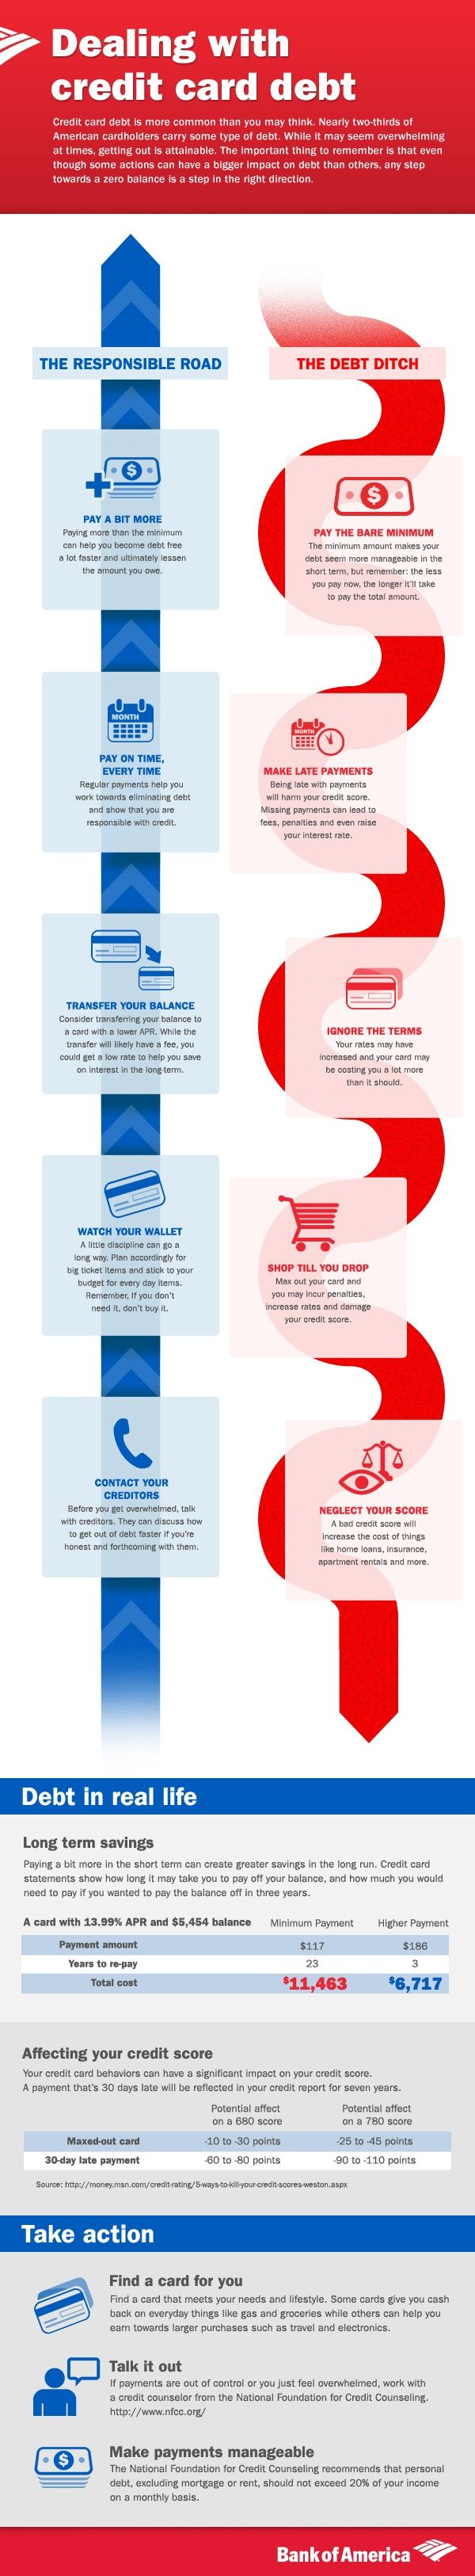 Dealing with Credit Card Debt Promotional Infographic